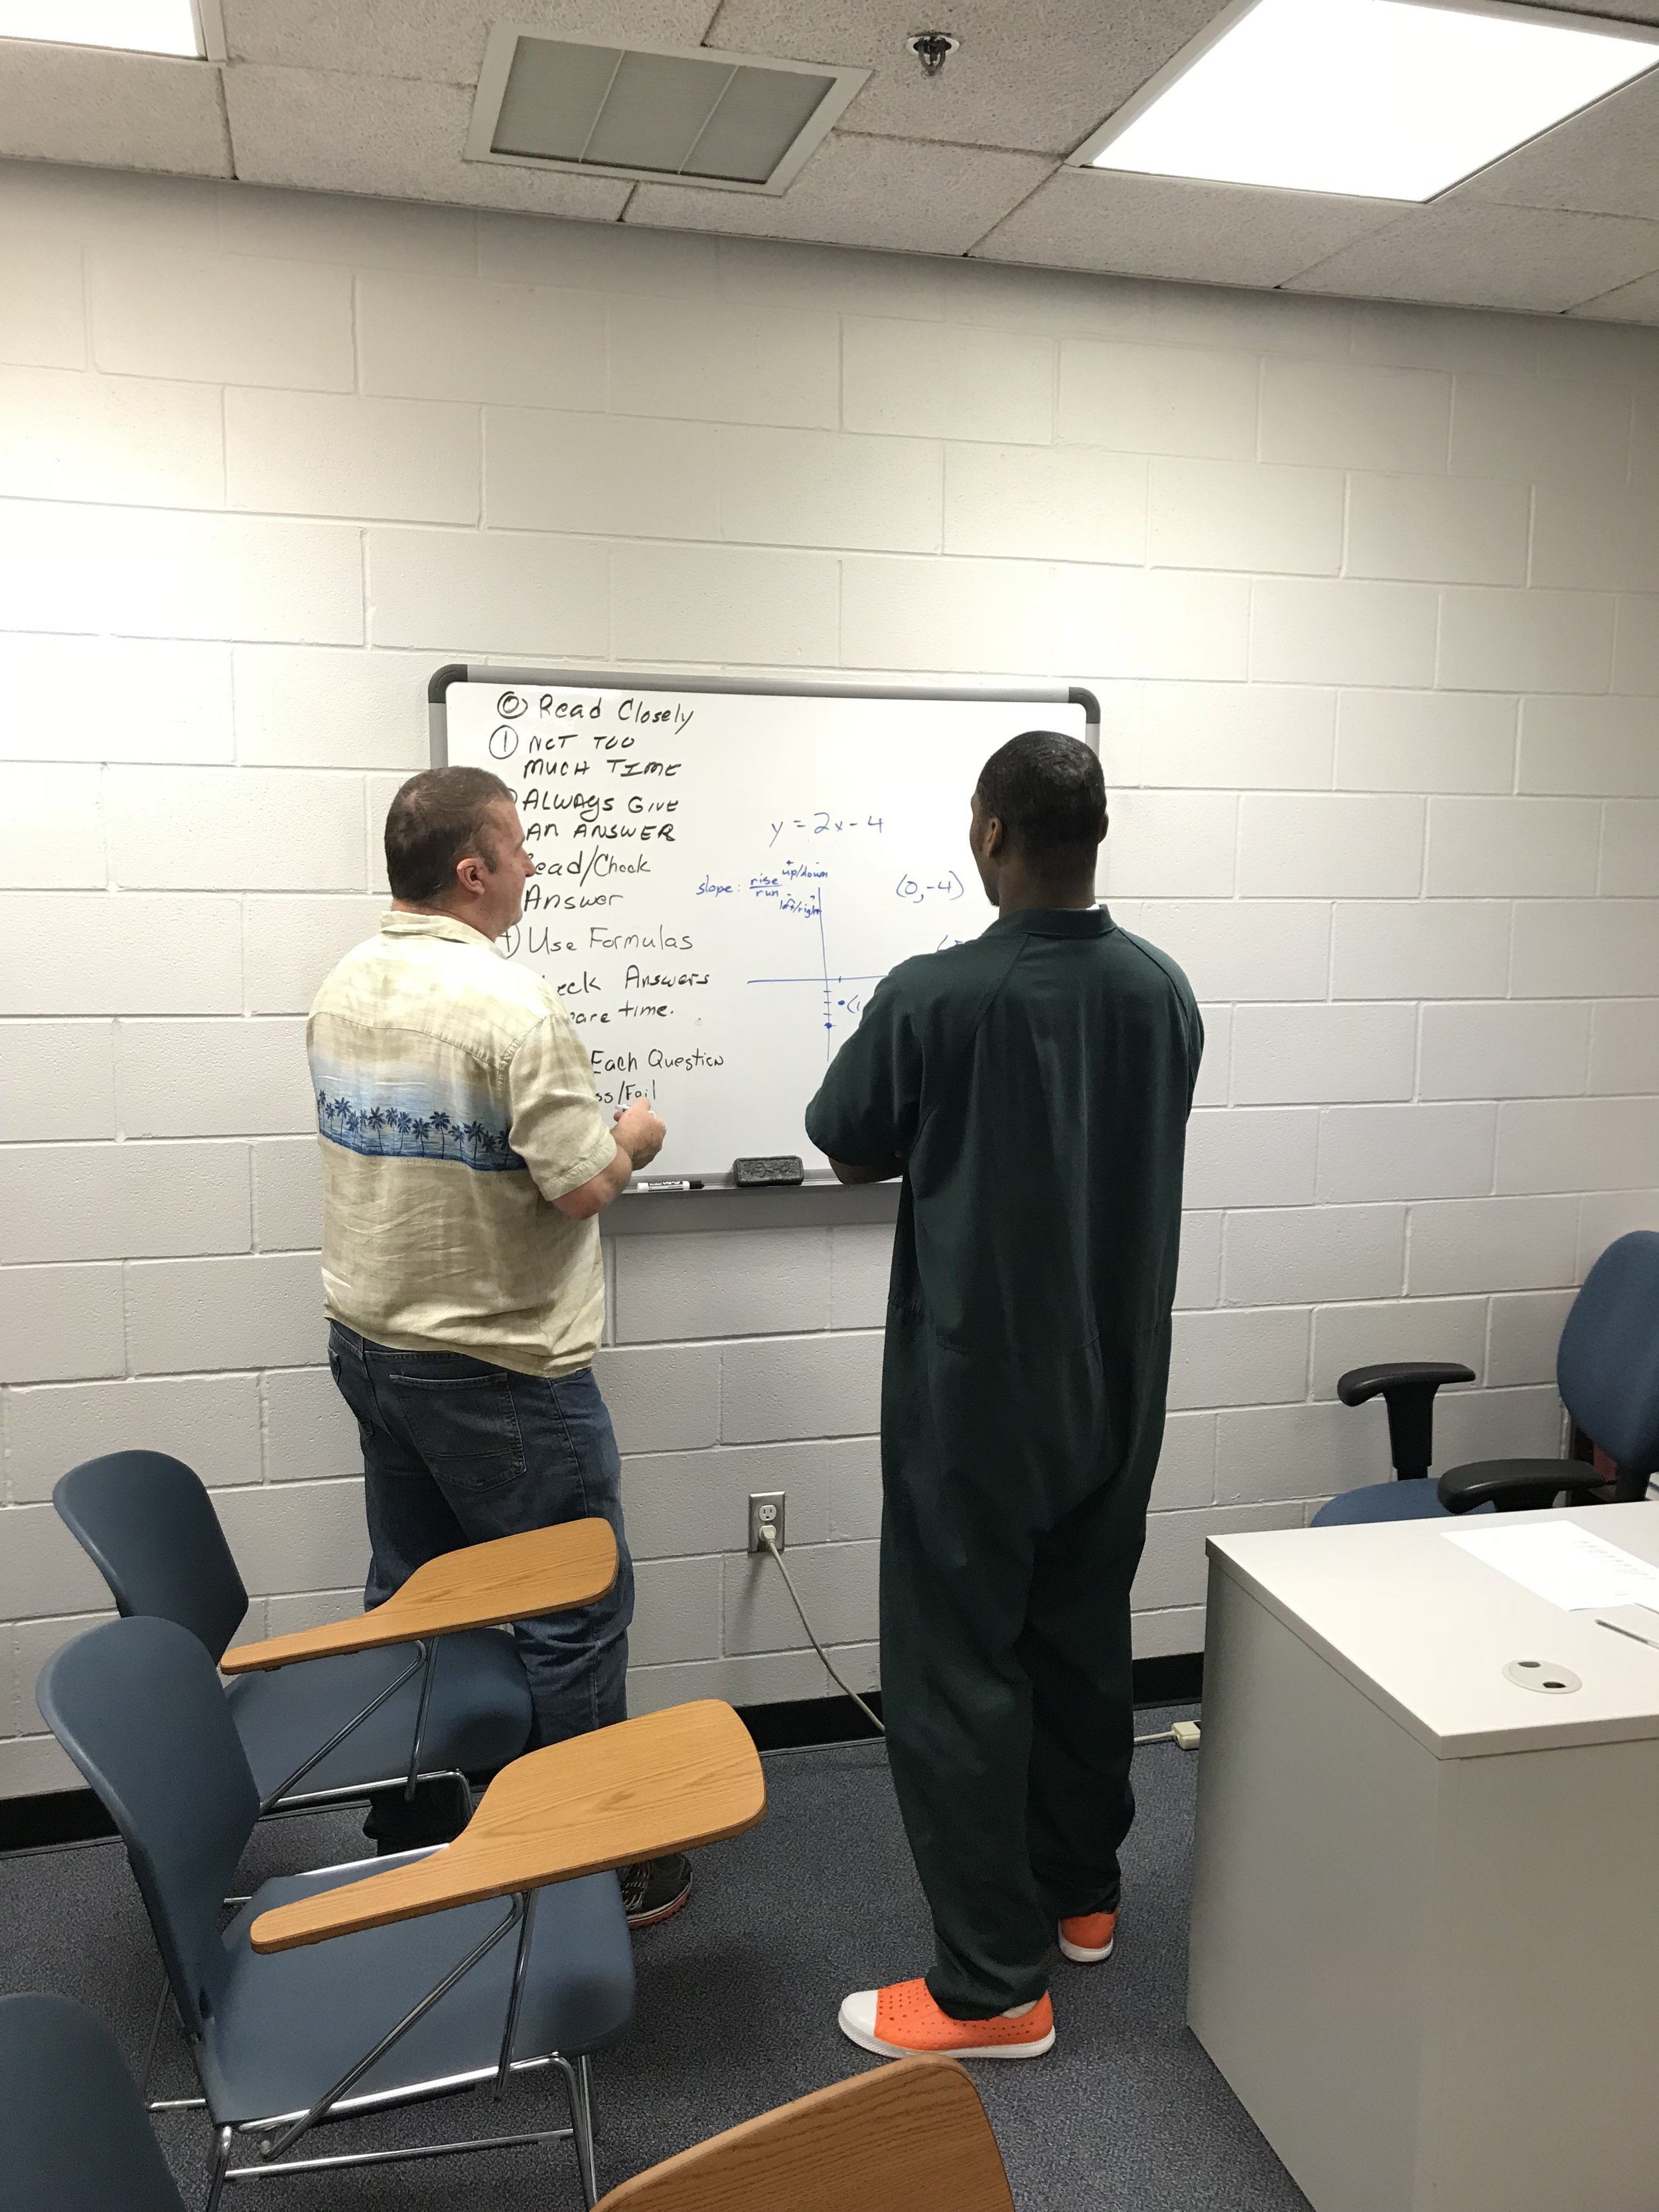 Photos provided by CCSO.Inmate with a volunteer math tutor during a GED class.